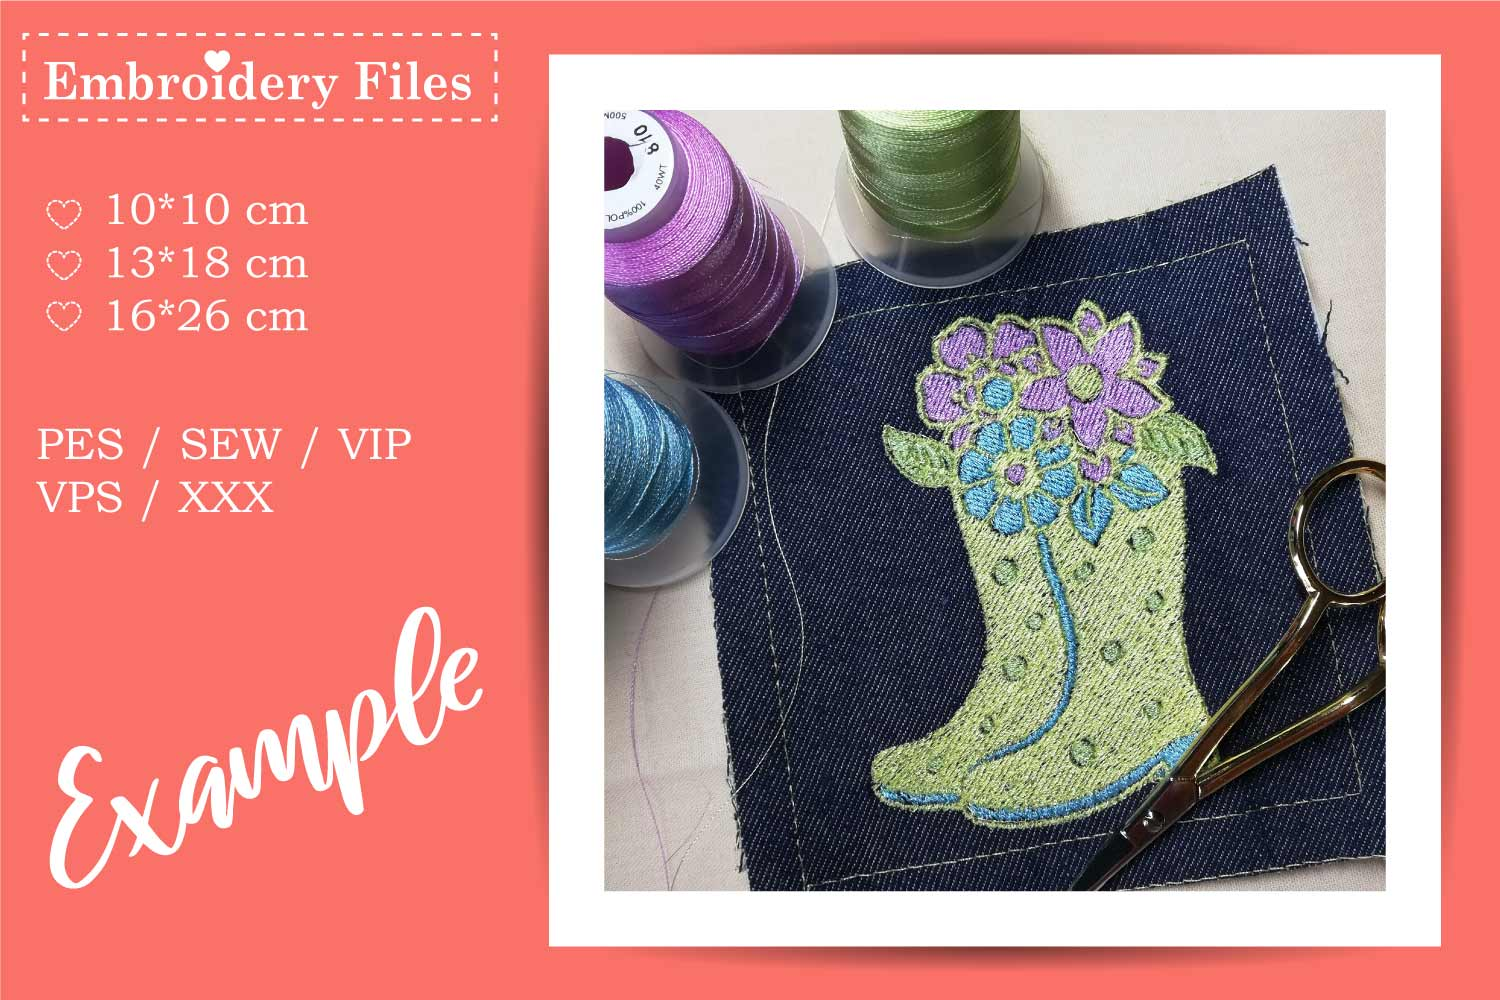 Rubber Boots with Flowers - Embroidery File example image 1